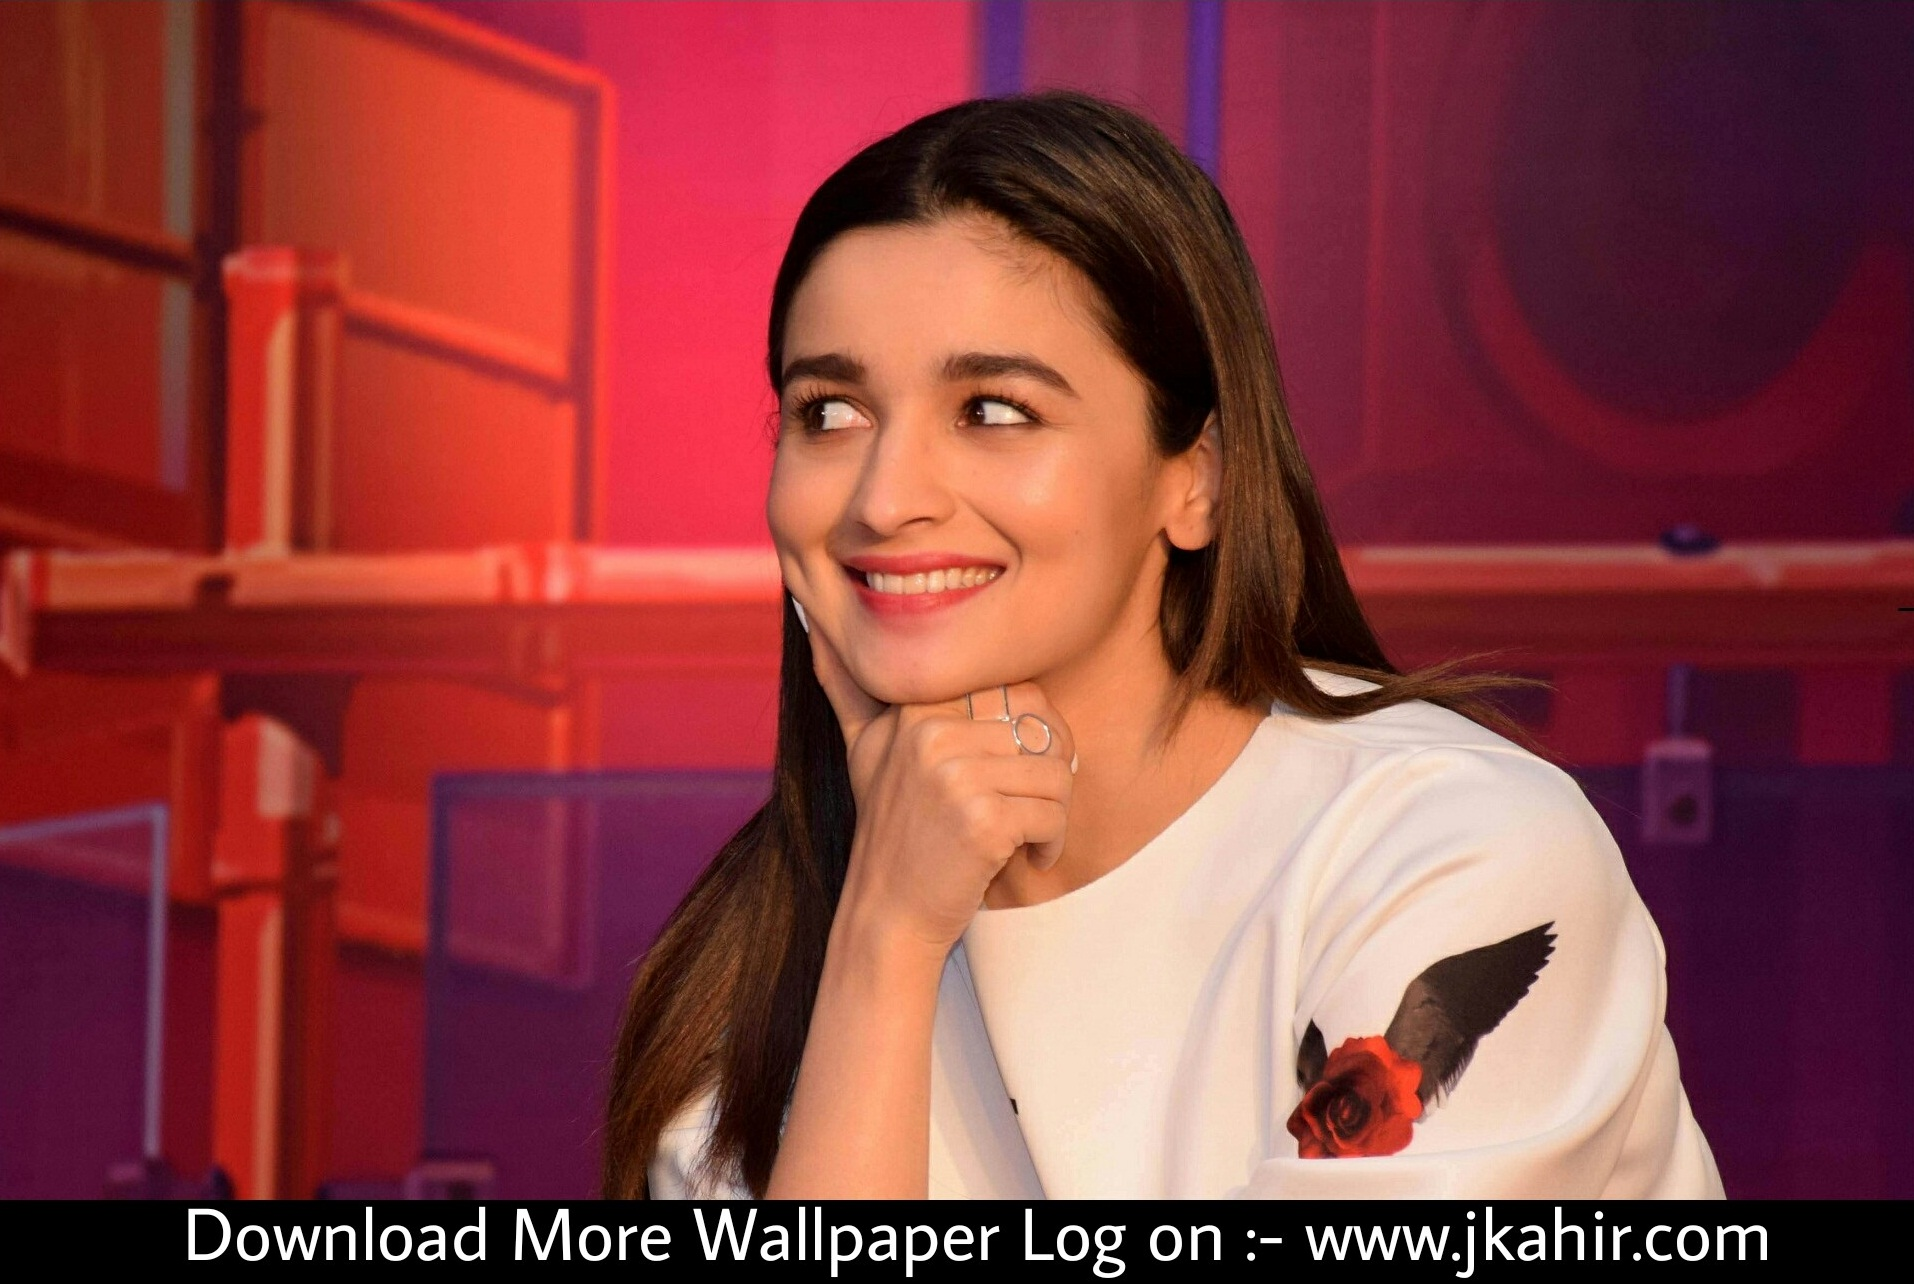 alia bhatt very cute and most beautiful » jkahir – hd wallpaper